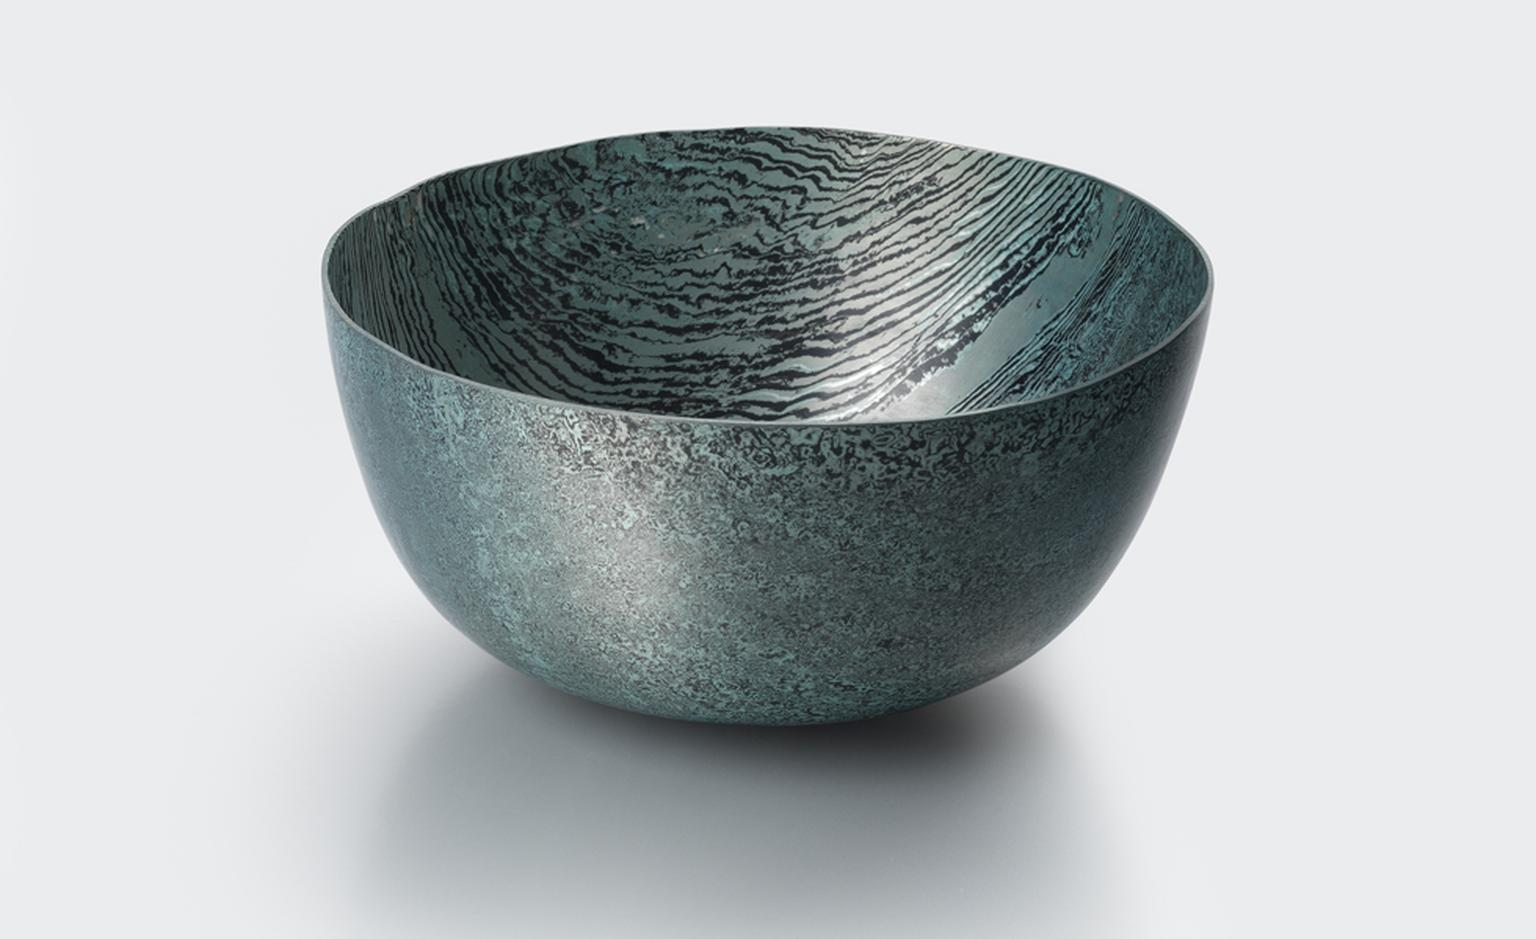 """Mokume Gane Bowl"" by Alistair McCallum, 2010 Hand raised Mokume Gane bowl made from 128 layers of silver and gilding metal."